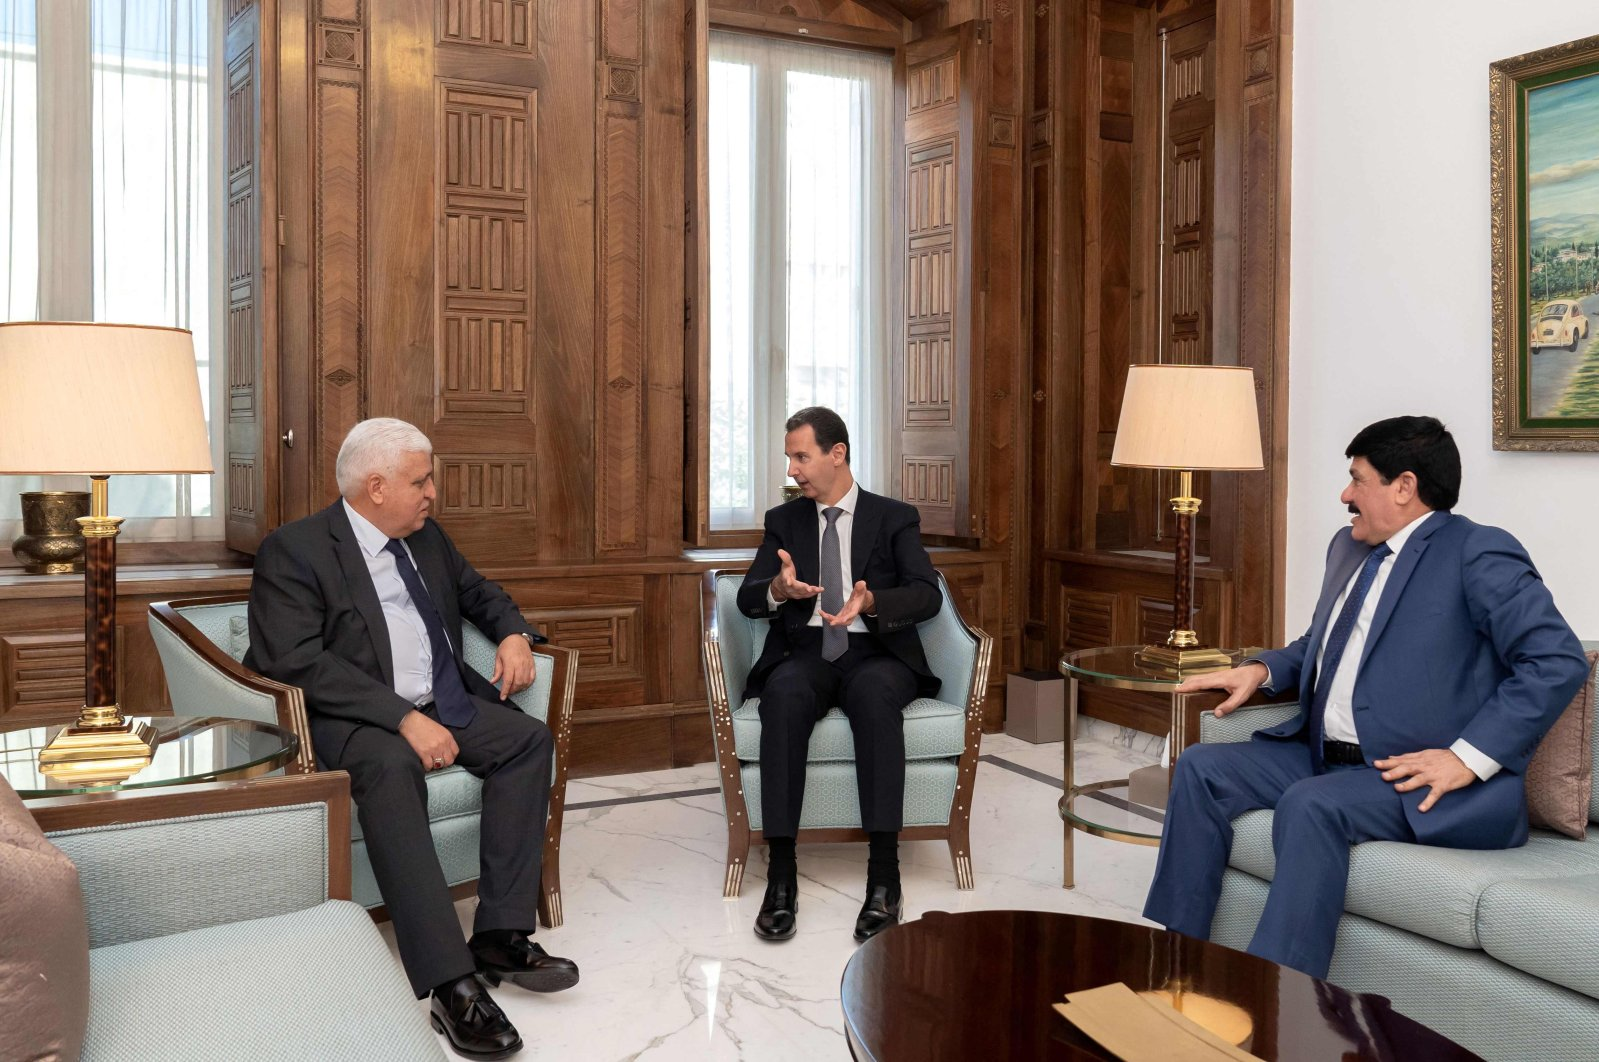 Syria's Bashar Assad (C) receives Faleh Fayyad (L), the chairman of the Iraqi Popular Mobilization Forces, in Damascus, Syria, Aug. 16, 2021. (AFP Photo)